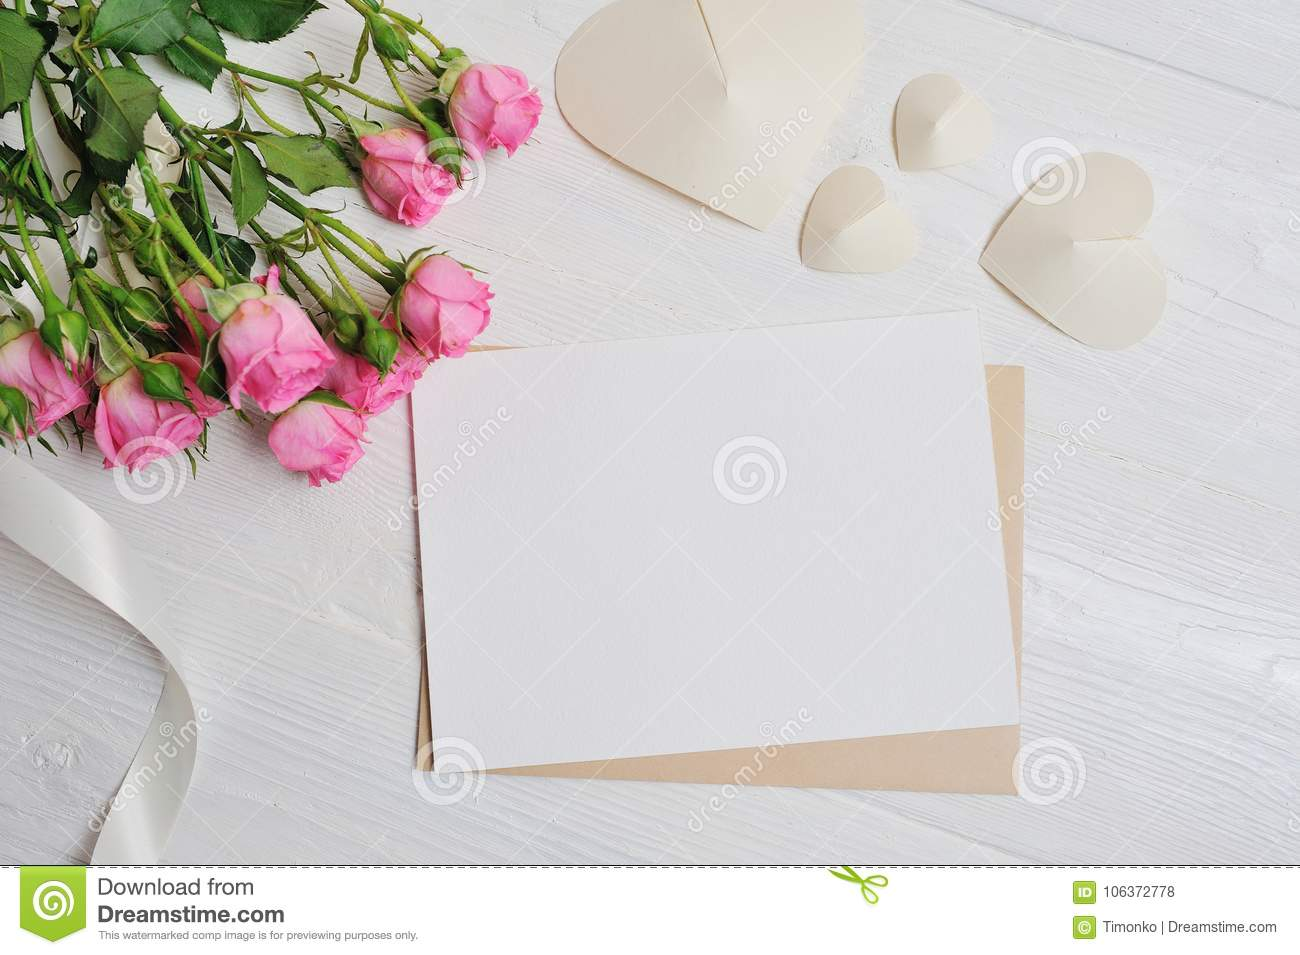 Mockup Letter White Origami Hearts Made Of Paper With Pink Roses